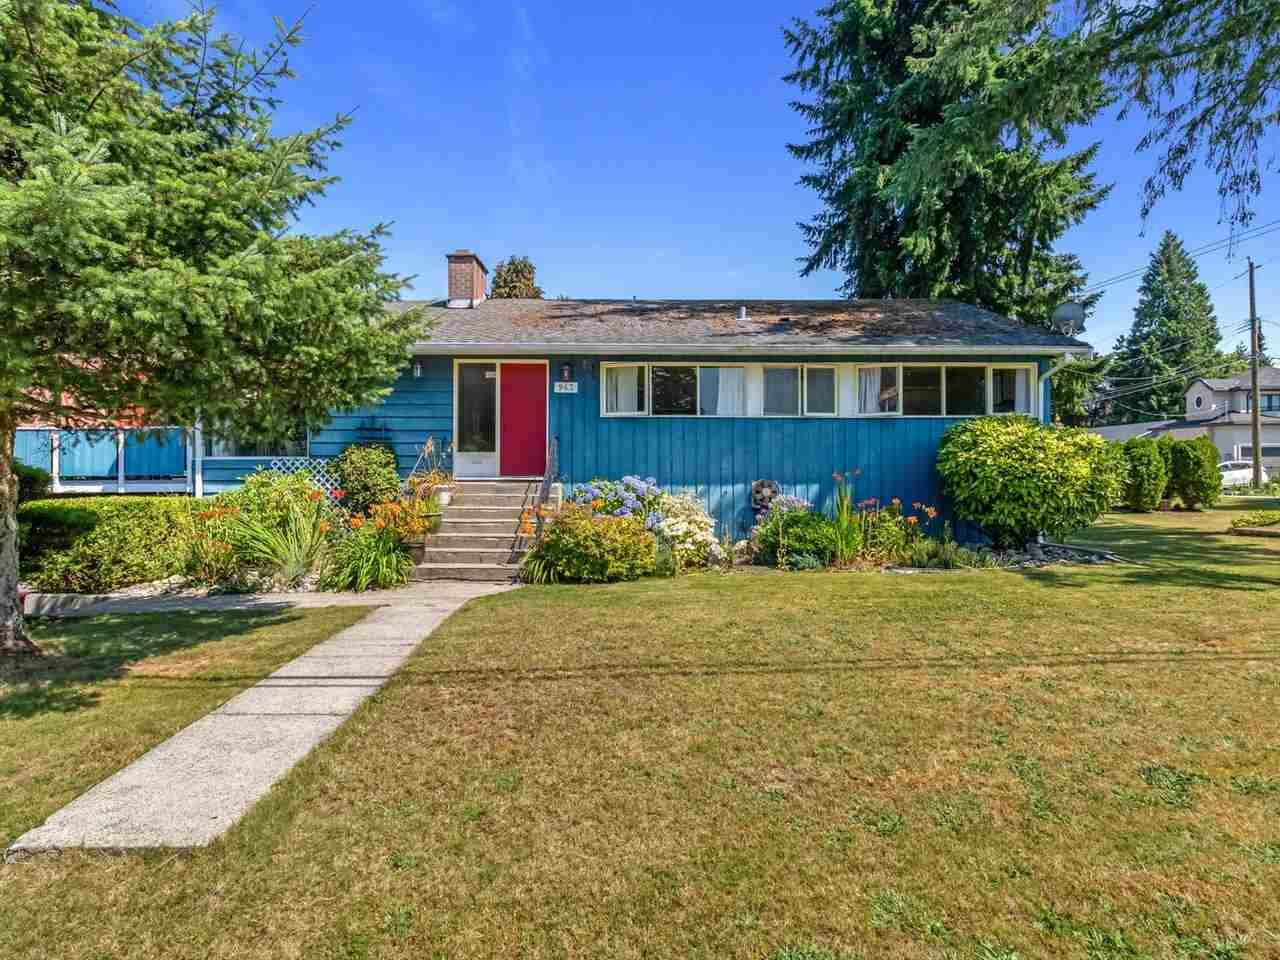 Photo 1: Photos: 943 GATENSBURY Street in Coquitlam: Harbour Chines House for sale : MLS®# R2499202